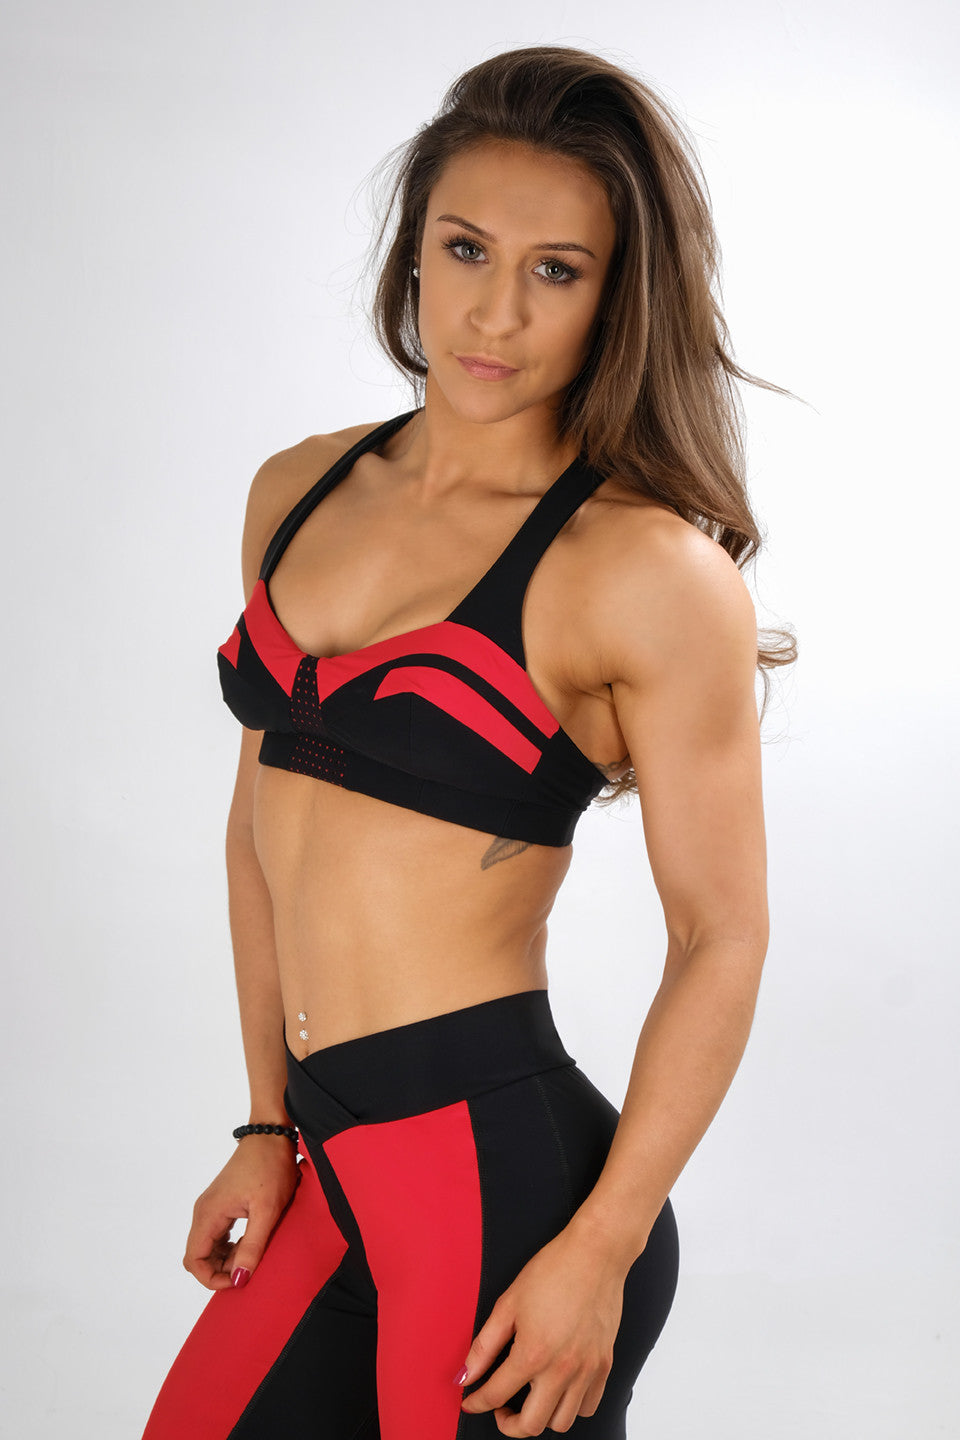 The Red Feminum Mystique Sports Bra